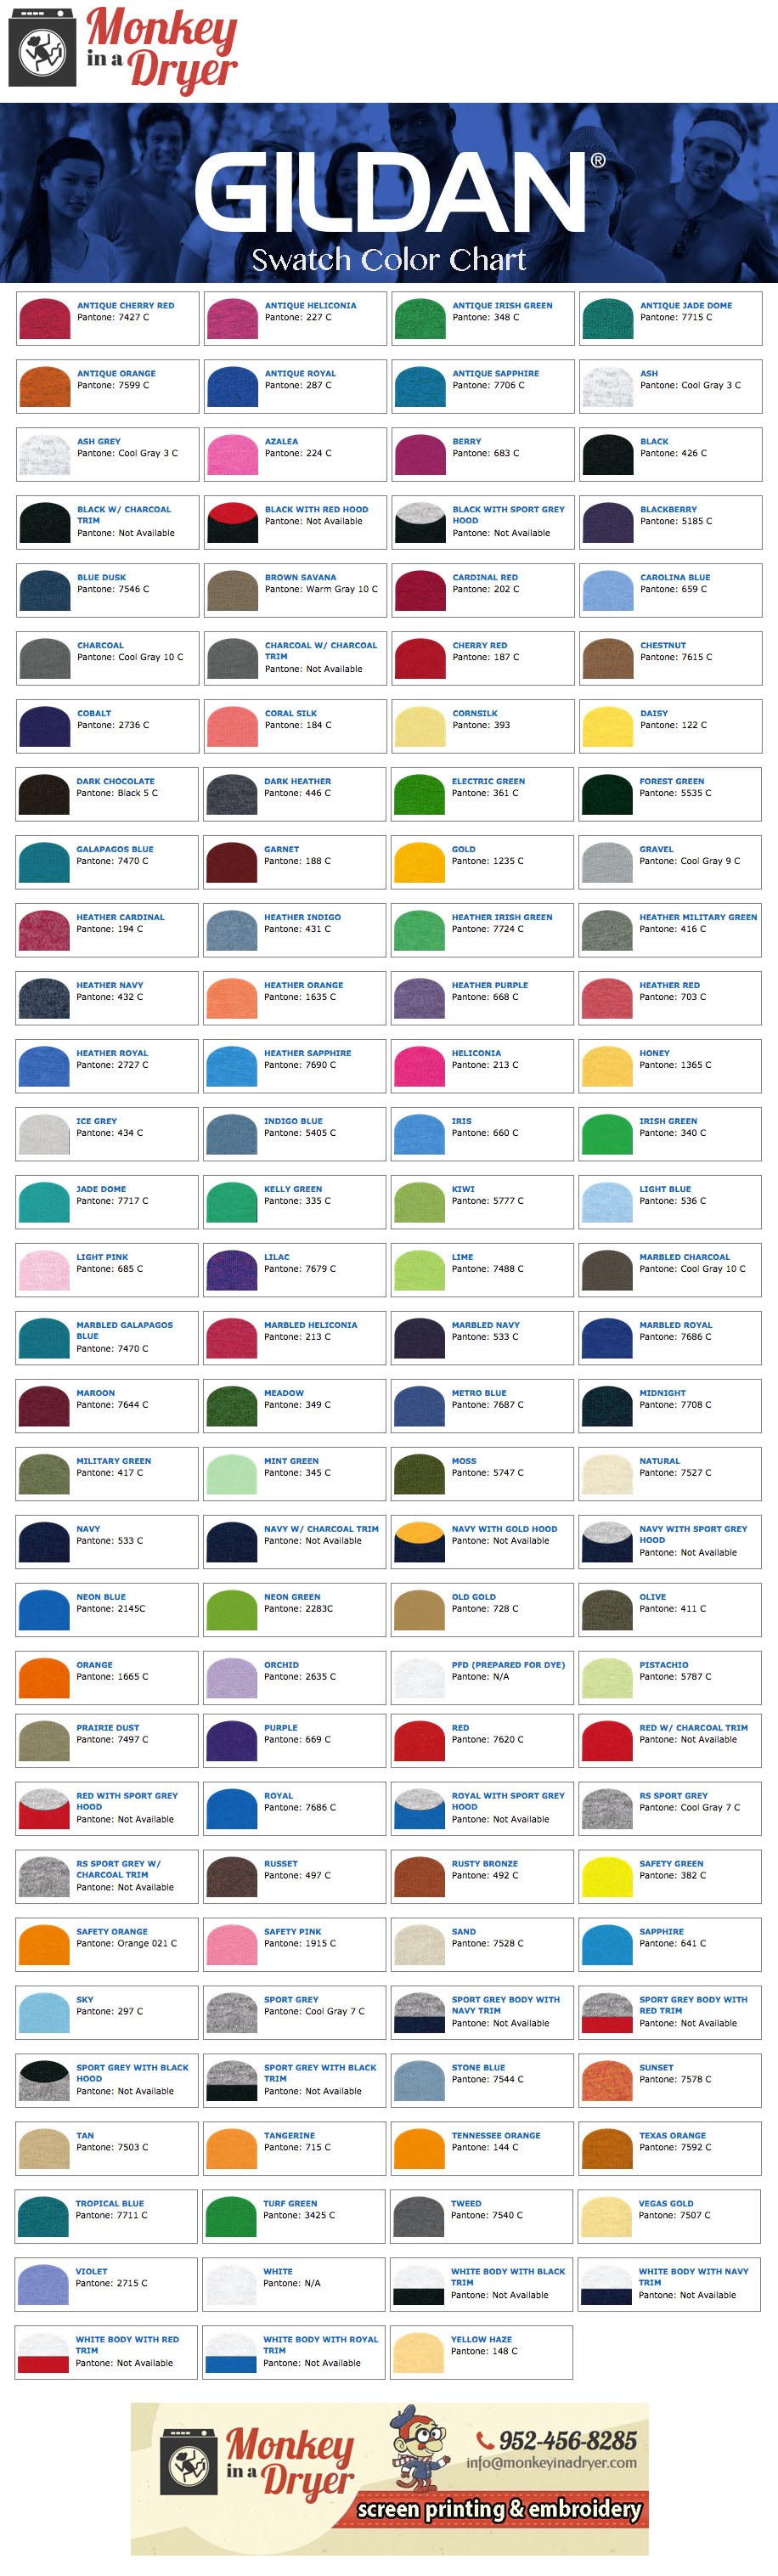 miad-gildan-swatch-color-chart-2016